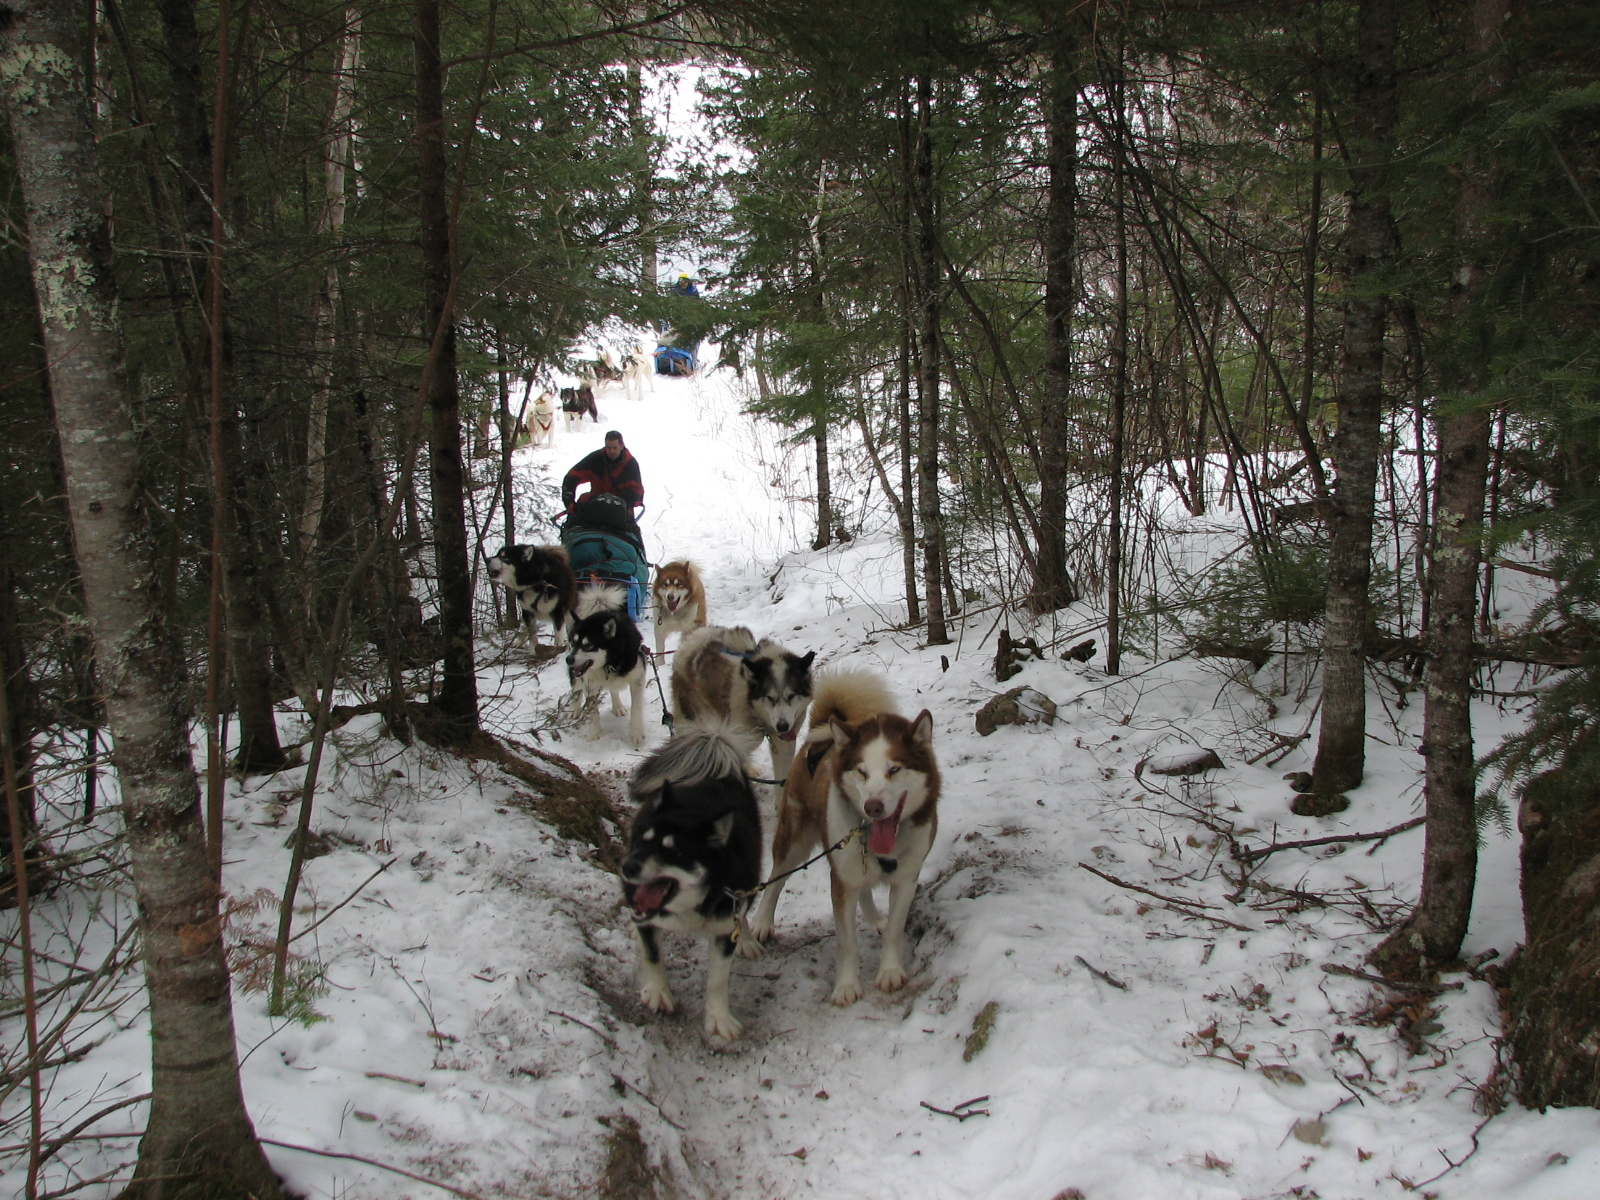 Tough Portage while Dog Sledding